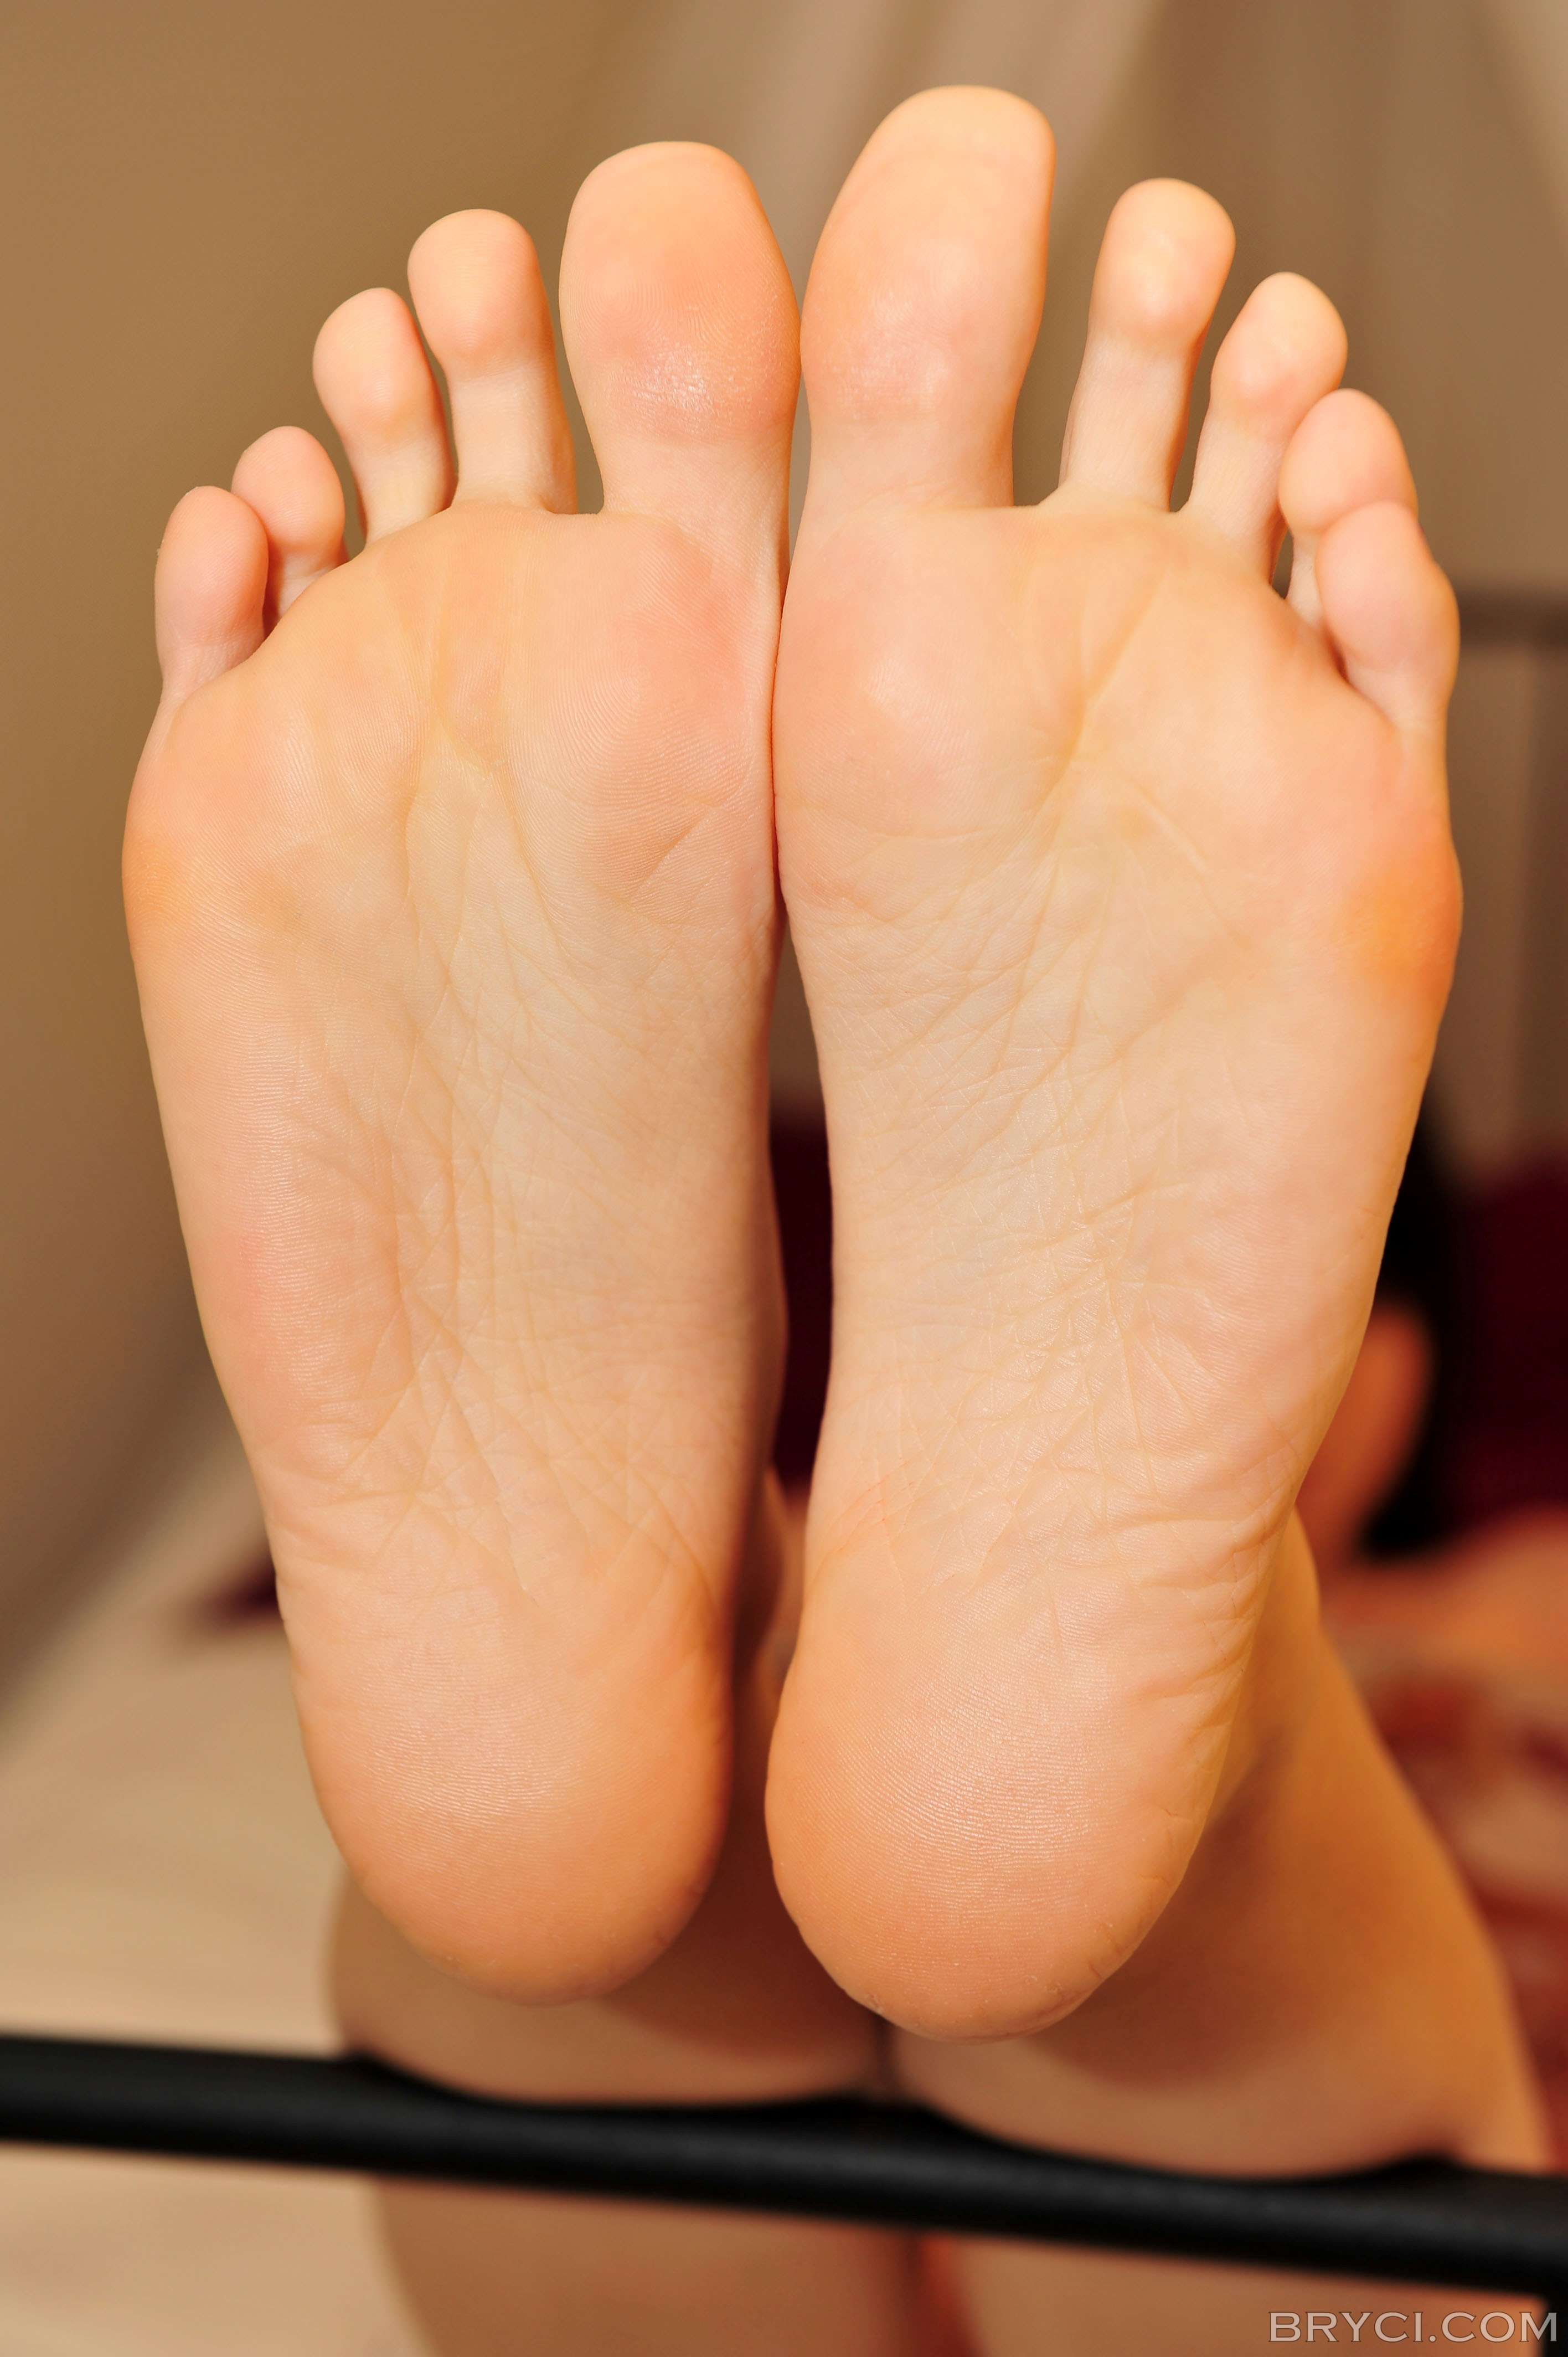 Feet Bryci nude photos 2019